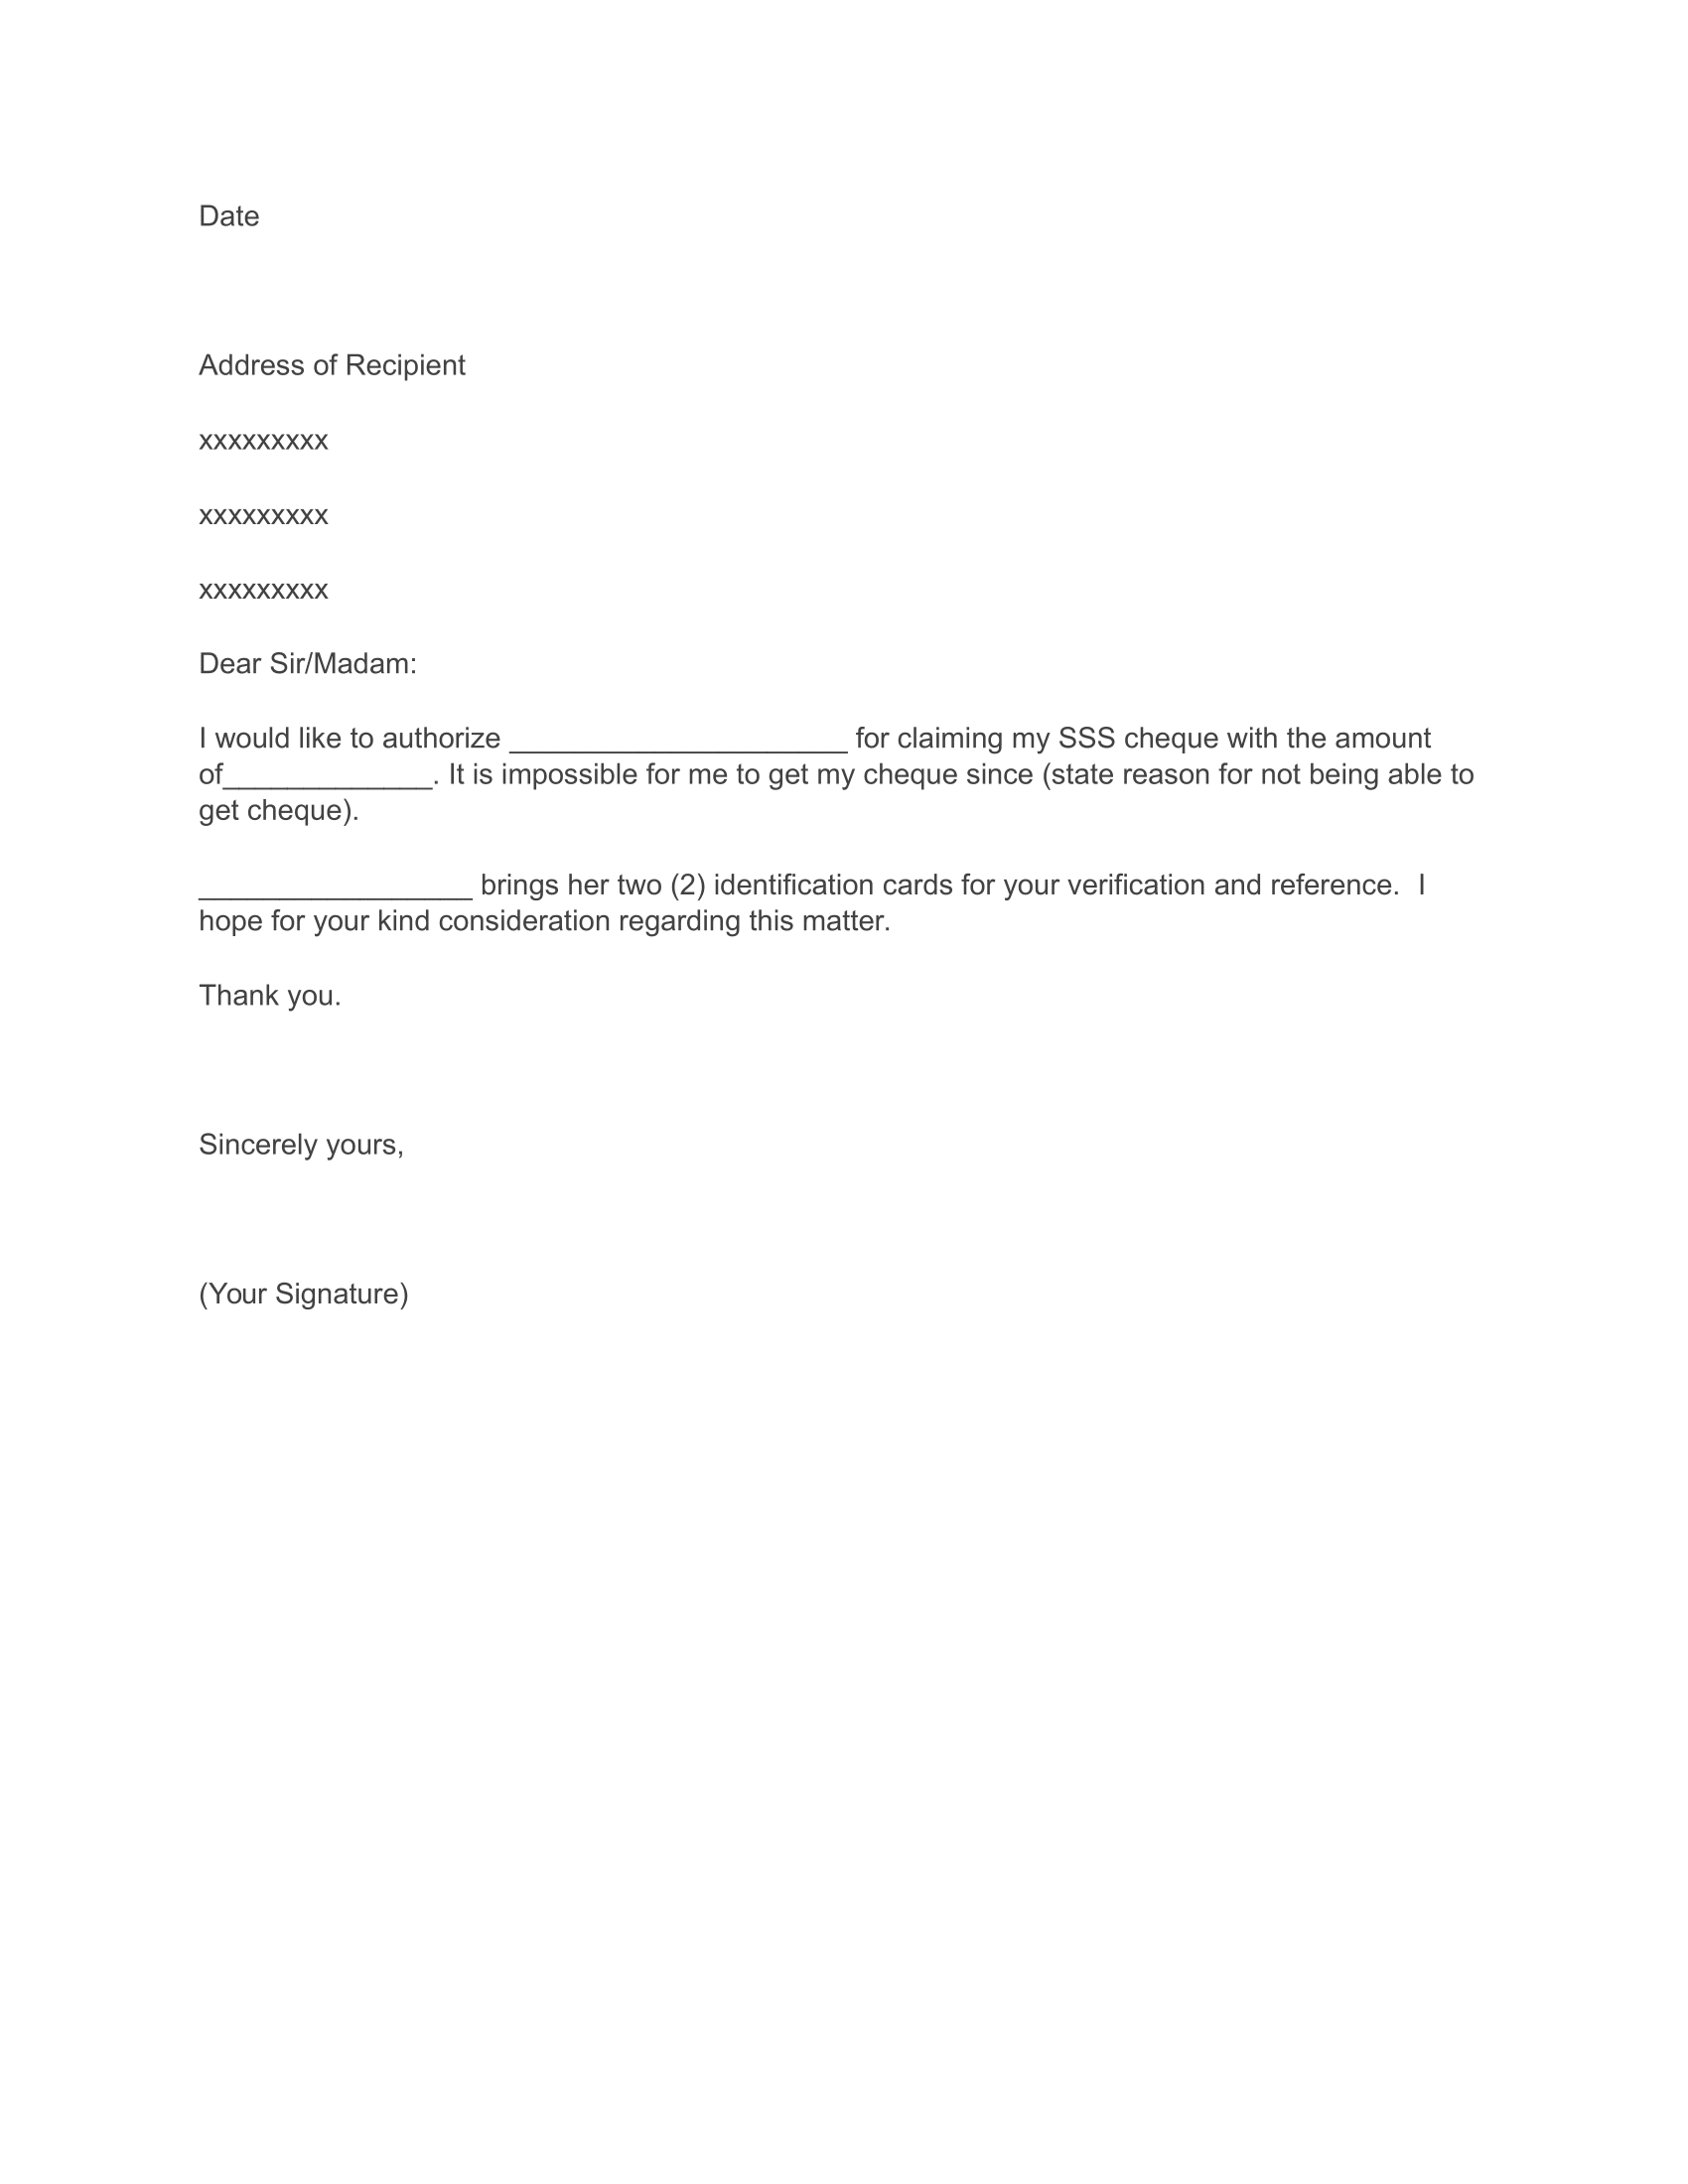 How To Write An Authorization Letter Sss Loan Application Download